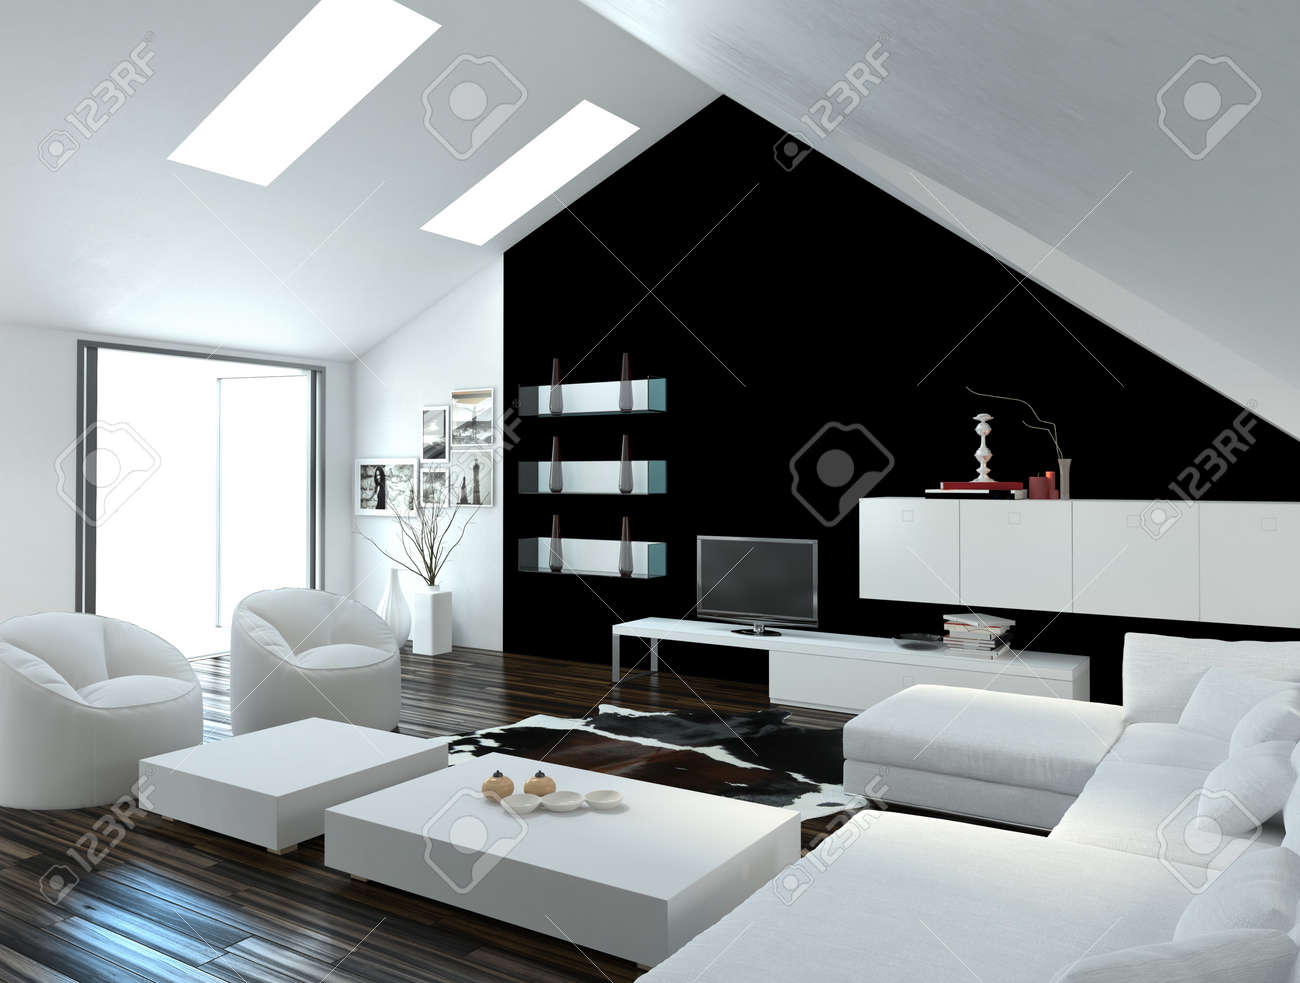 Loft Living Room Modern Compact Loft Living Room Interior With Skylights In The